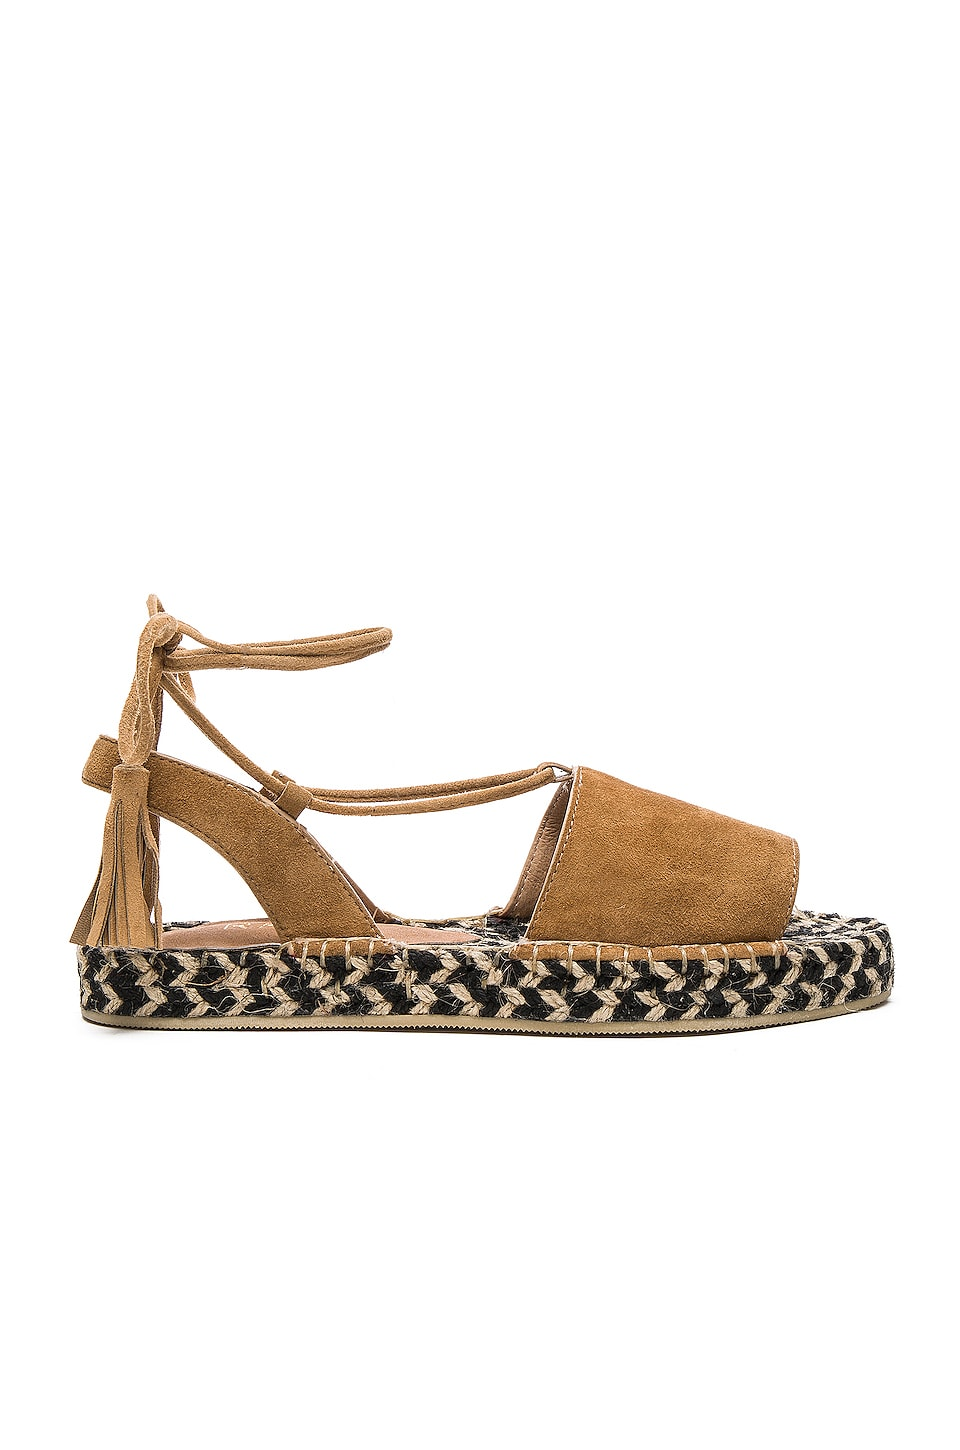 RAYE Devon Sandal in Tan & Multi Weave